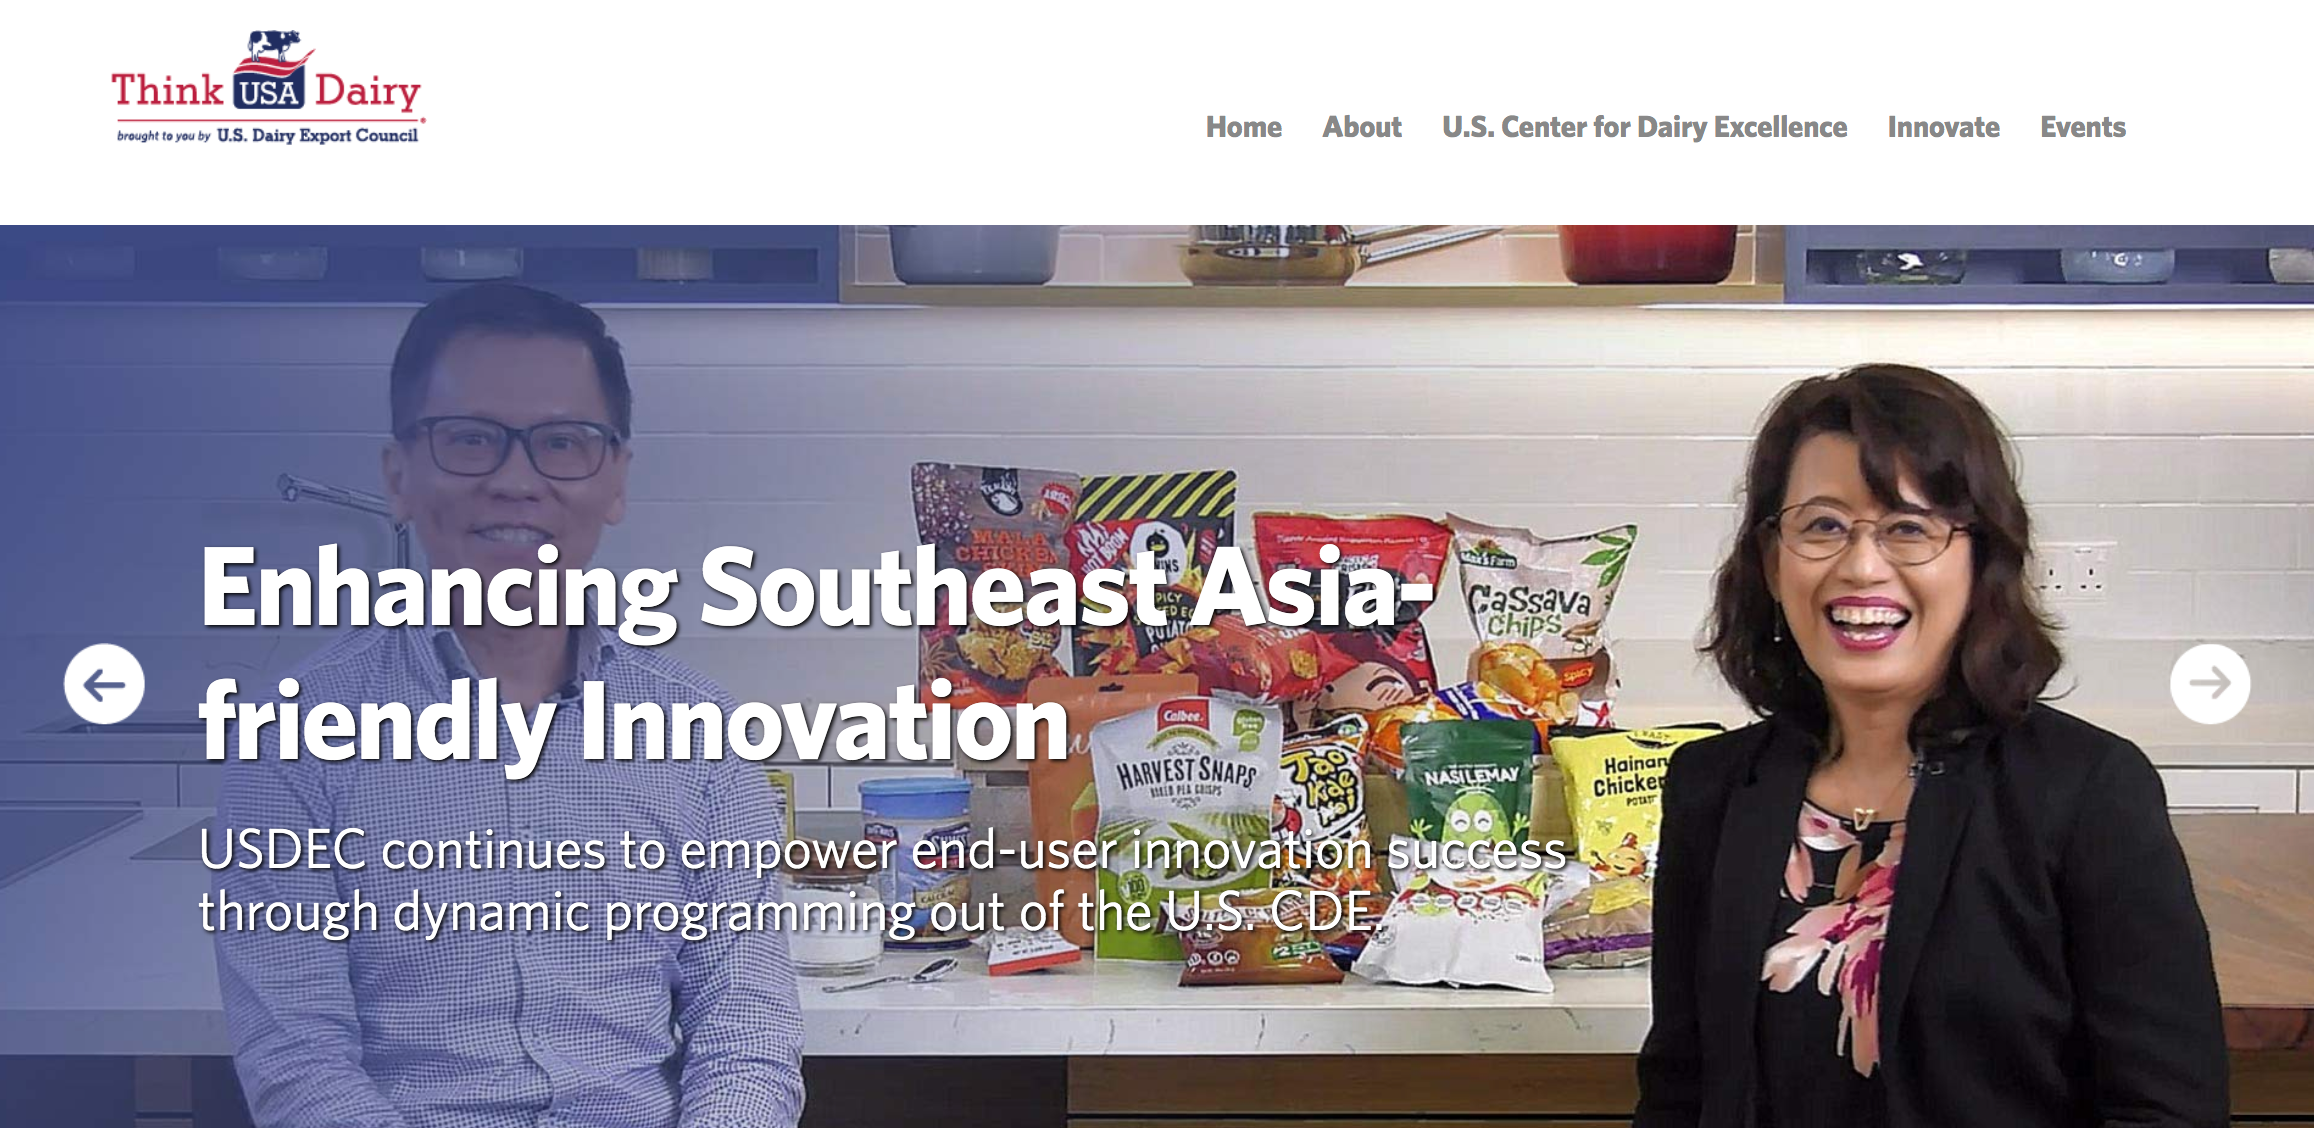 The U.S. Dairy Export Council officially opened the U.S. Center for Dairy Excellence in Singapore.